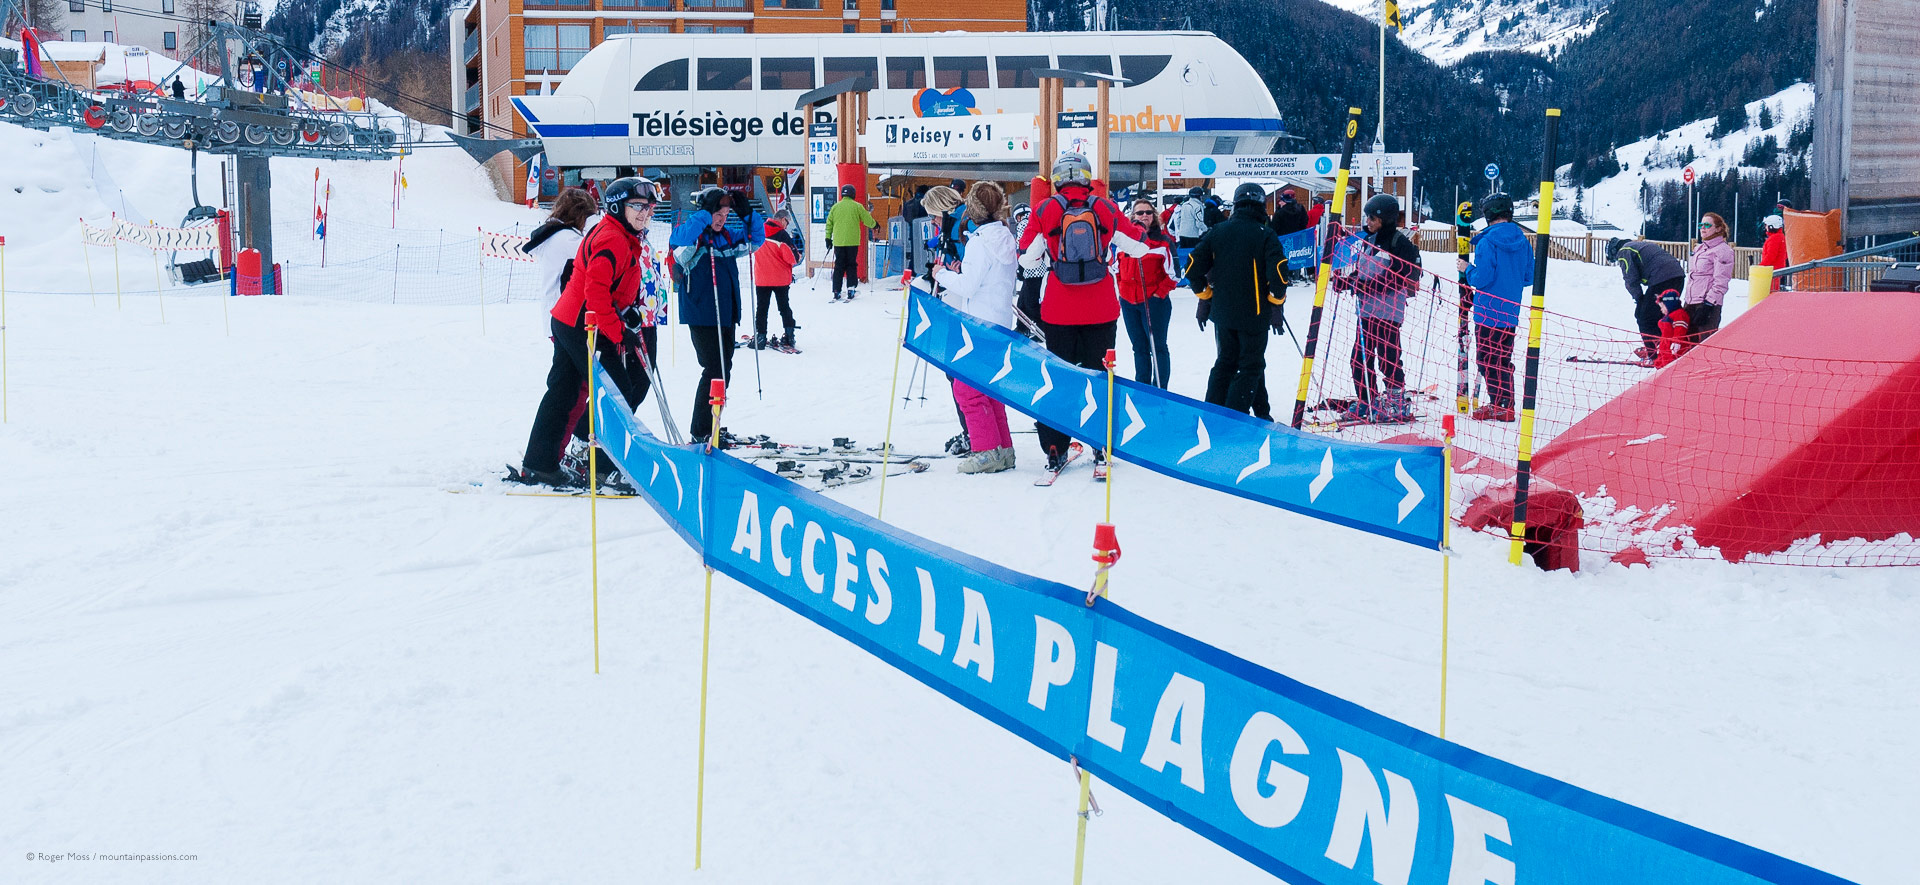 Skiers beside signs to liason with La Plagne, with ski-lifts in background.